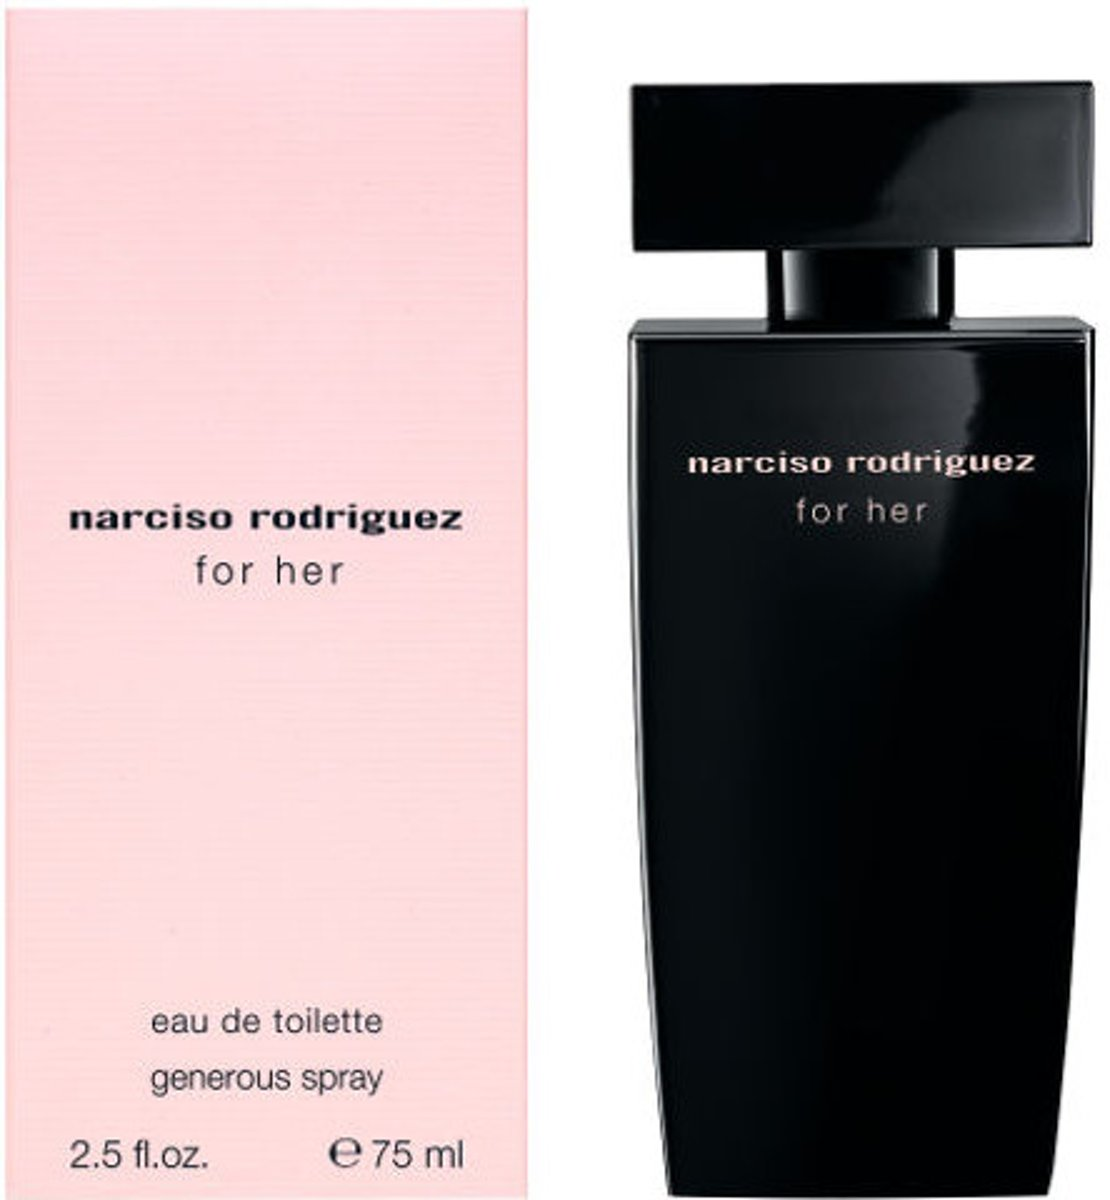 Narciso Rodriguez FOR HER edt spray generous spray 75 ml